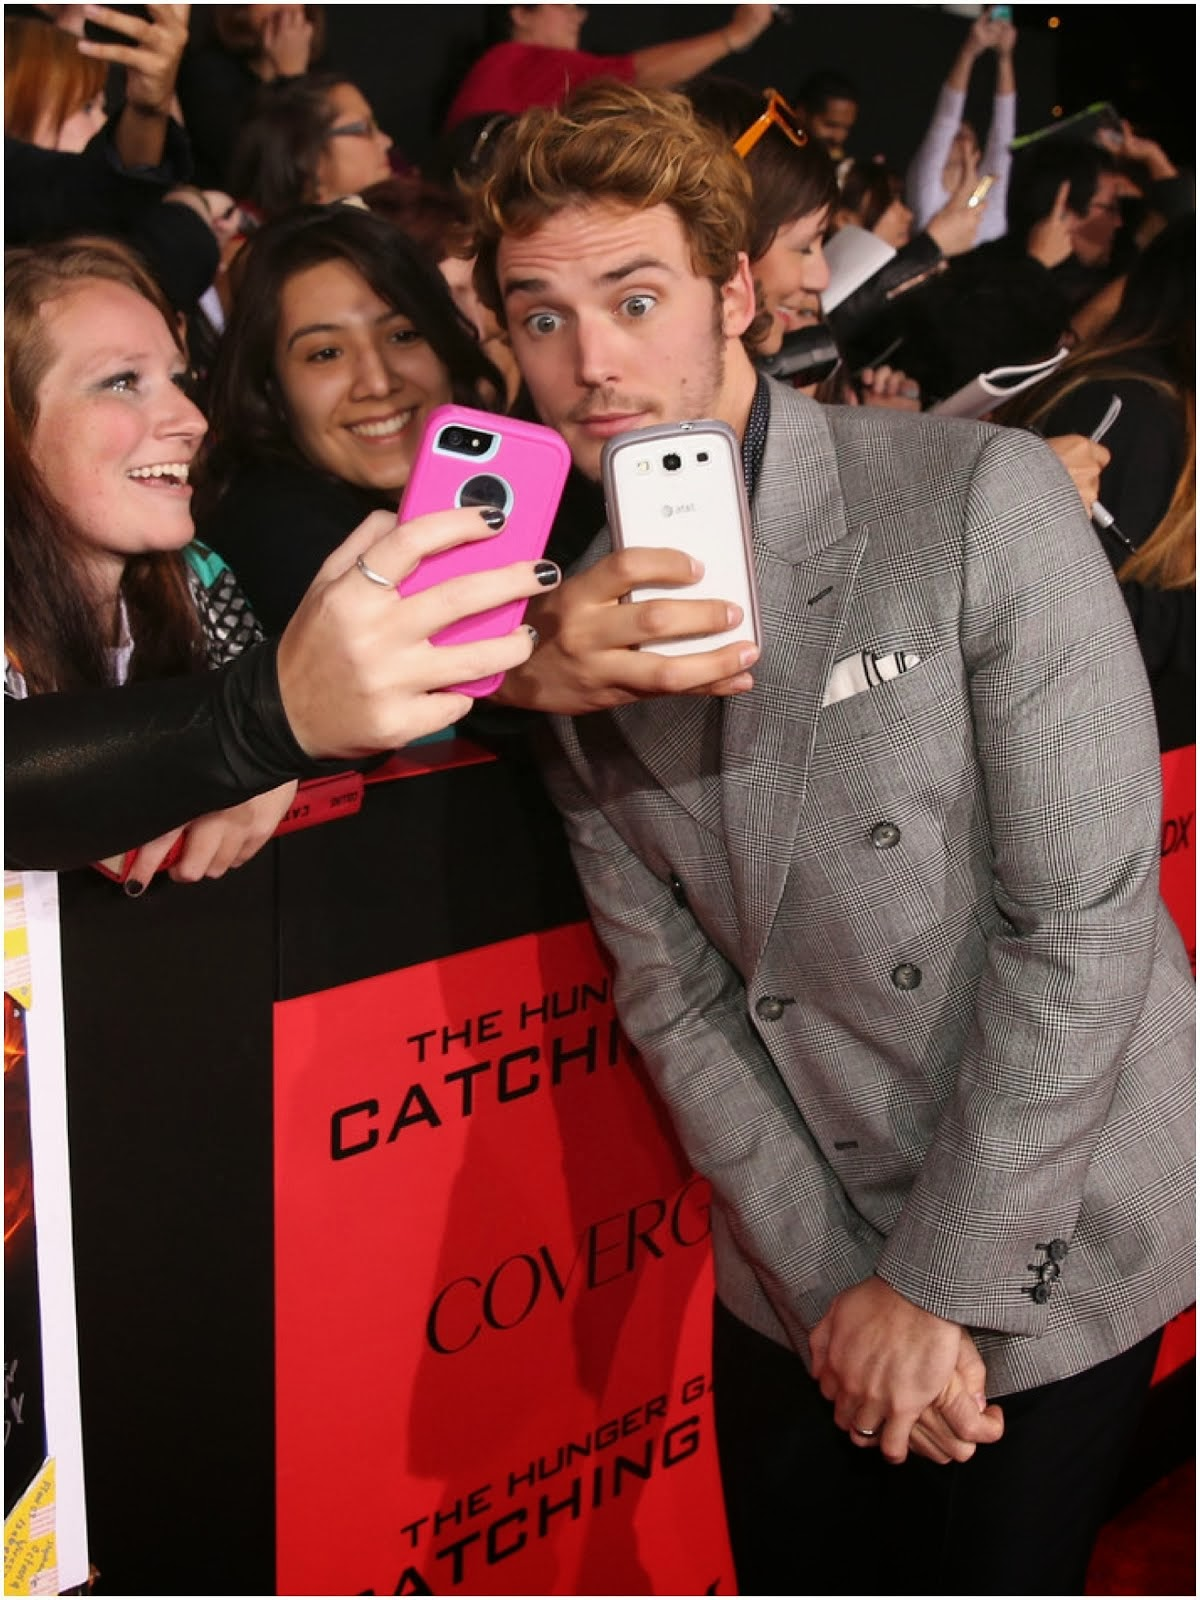 Sam Claflin in Alexander McQueen PRINCE OF WALES DOUBLE BREASTED JACKET - 'The Hunger Games: Catching Fire' Los Angeles Premiere November 2013